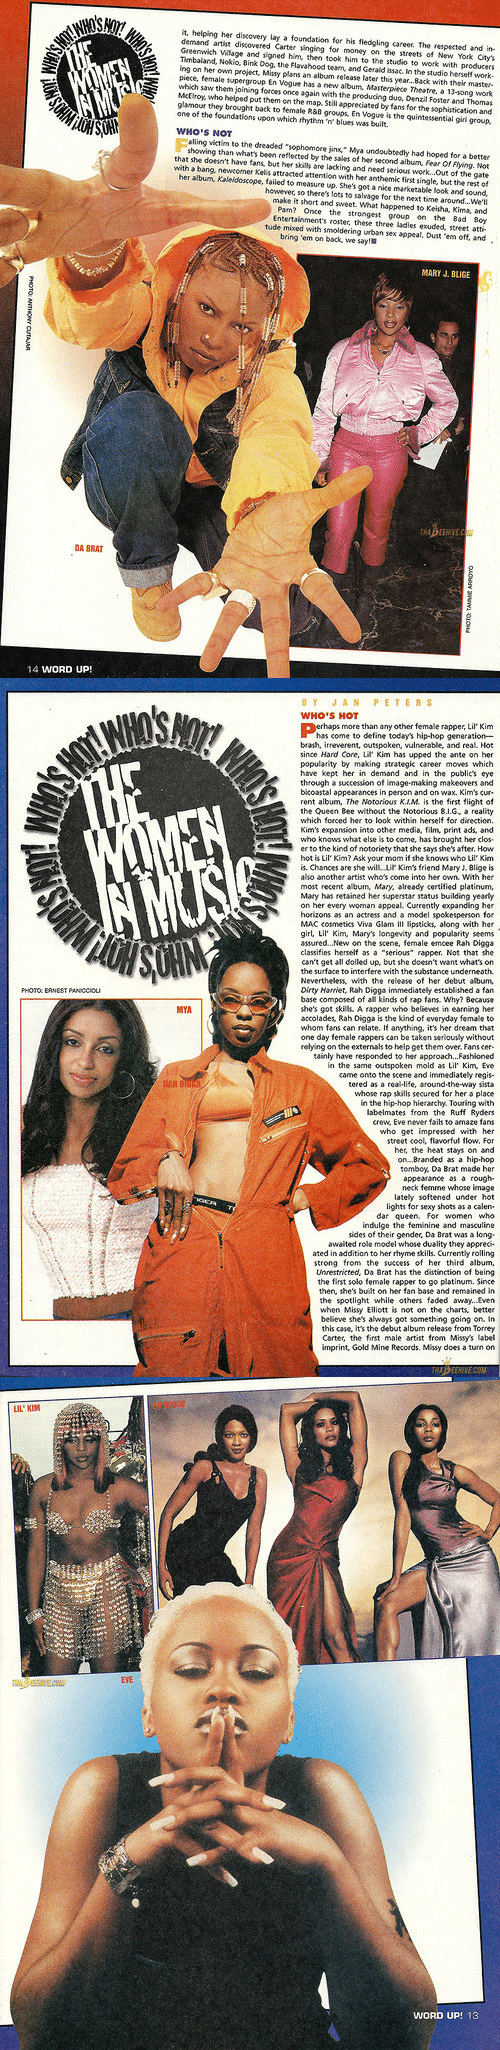 Bad, Kelis, and Life: it, helping her disovery lay a foundation for his fledgling career The respected and in-  demand artst discovered Carter singing for money on the streets of Ne York Citys  Greenwich Village and signed him, then took him to the studio to work with producers  Timbaland, Nokio, Bink Dog, the Flavahood team, and Gerald issac. In the studio herself work  ing on her own project, Missy plans an album release later this year...Back with their master-  piece, female supergroup En Vogue has a new album, Masterpiece Theatre, a 13-song work  which saw them joining forces once again with the producing duo, Denzil Foster and Thomas  McElroy, who helped put them on the map. Still appreciated by fans for the sophistication and  glamour they brought back to female R&8 groups, En Vogue is the quintessential girl group.  one of the foundations upon which rhythm 'n blues was built.  WHO'S NOT  showing than whats been reflected by the sales of her second album, Fear Of Flying. Not  that she doein't have fans, but her skills are lacking and need serious work..Out of the gate  with a bang, newcomer Kelis attracted attention with her anthemic first single, but the rest of  her albun, Kleidoscope, failed to measure up. Shes gt a nice marketable look and sound.  however, so there's lots to salvage for the next time around..We'll  make it short and sweet. What happened to Keisha, Kima, and  Pam? Once the strongest group on the Bad Boy  Entertainment's roster, these three ladies exuded, street atti  tude mixed with smoldering urban sex appeal, Dust 'em off, and  bring 'em on back, we say!  MARY J. BLIGE  DA BRAT  14 WORD UP!   BYJAN PETERS  WHO'S HOT  rhaps more than any other female rapper, Lil Kim  has come to define today's hip-hop generation  brash, irreverent, outspoken, vulnerable, and real. Hot  since Hard Core, L Kim has upped the ante on her  populatity by making strategik career moves which  have kept her in demand and in the publics eye  through a succession of